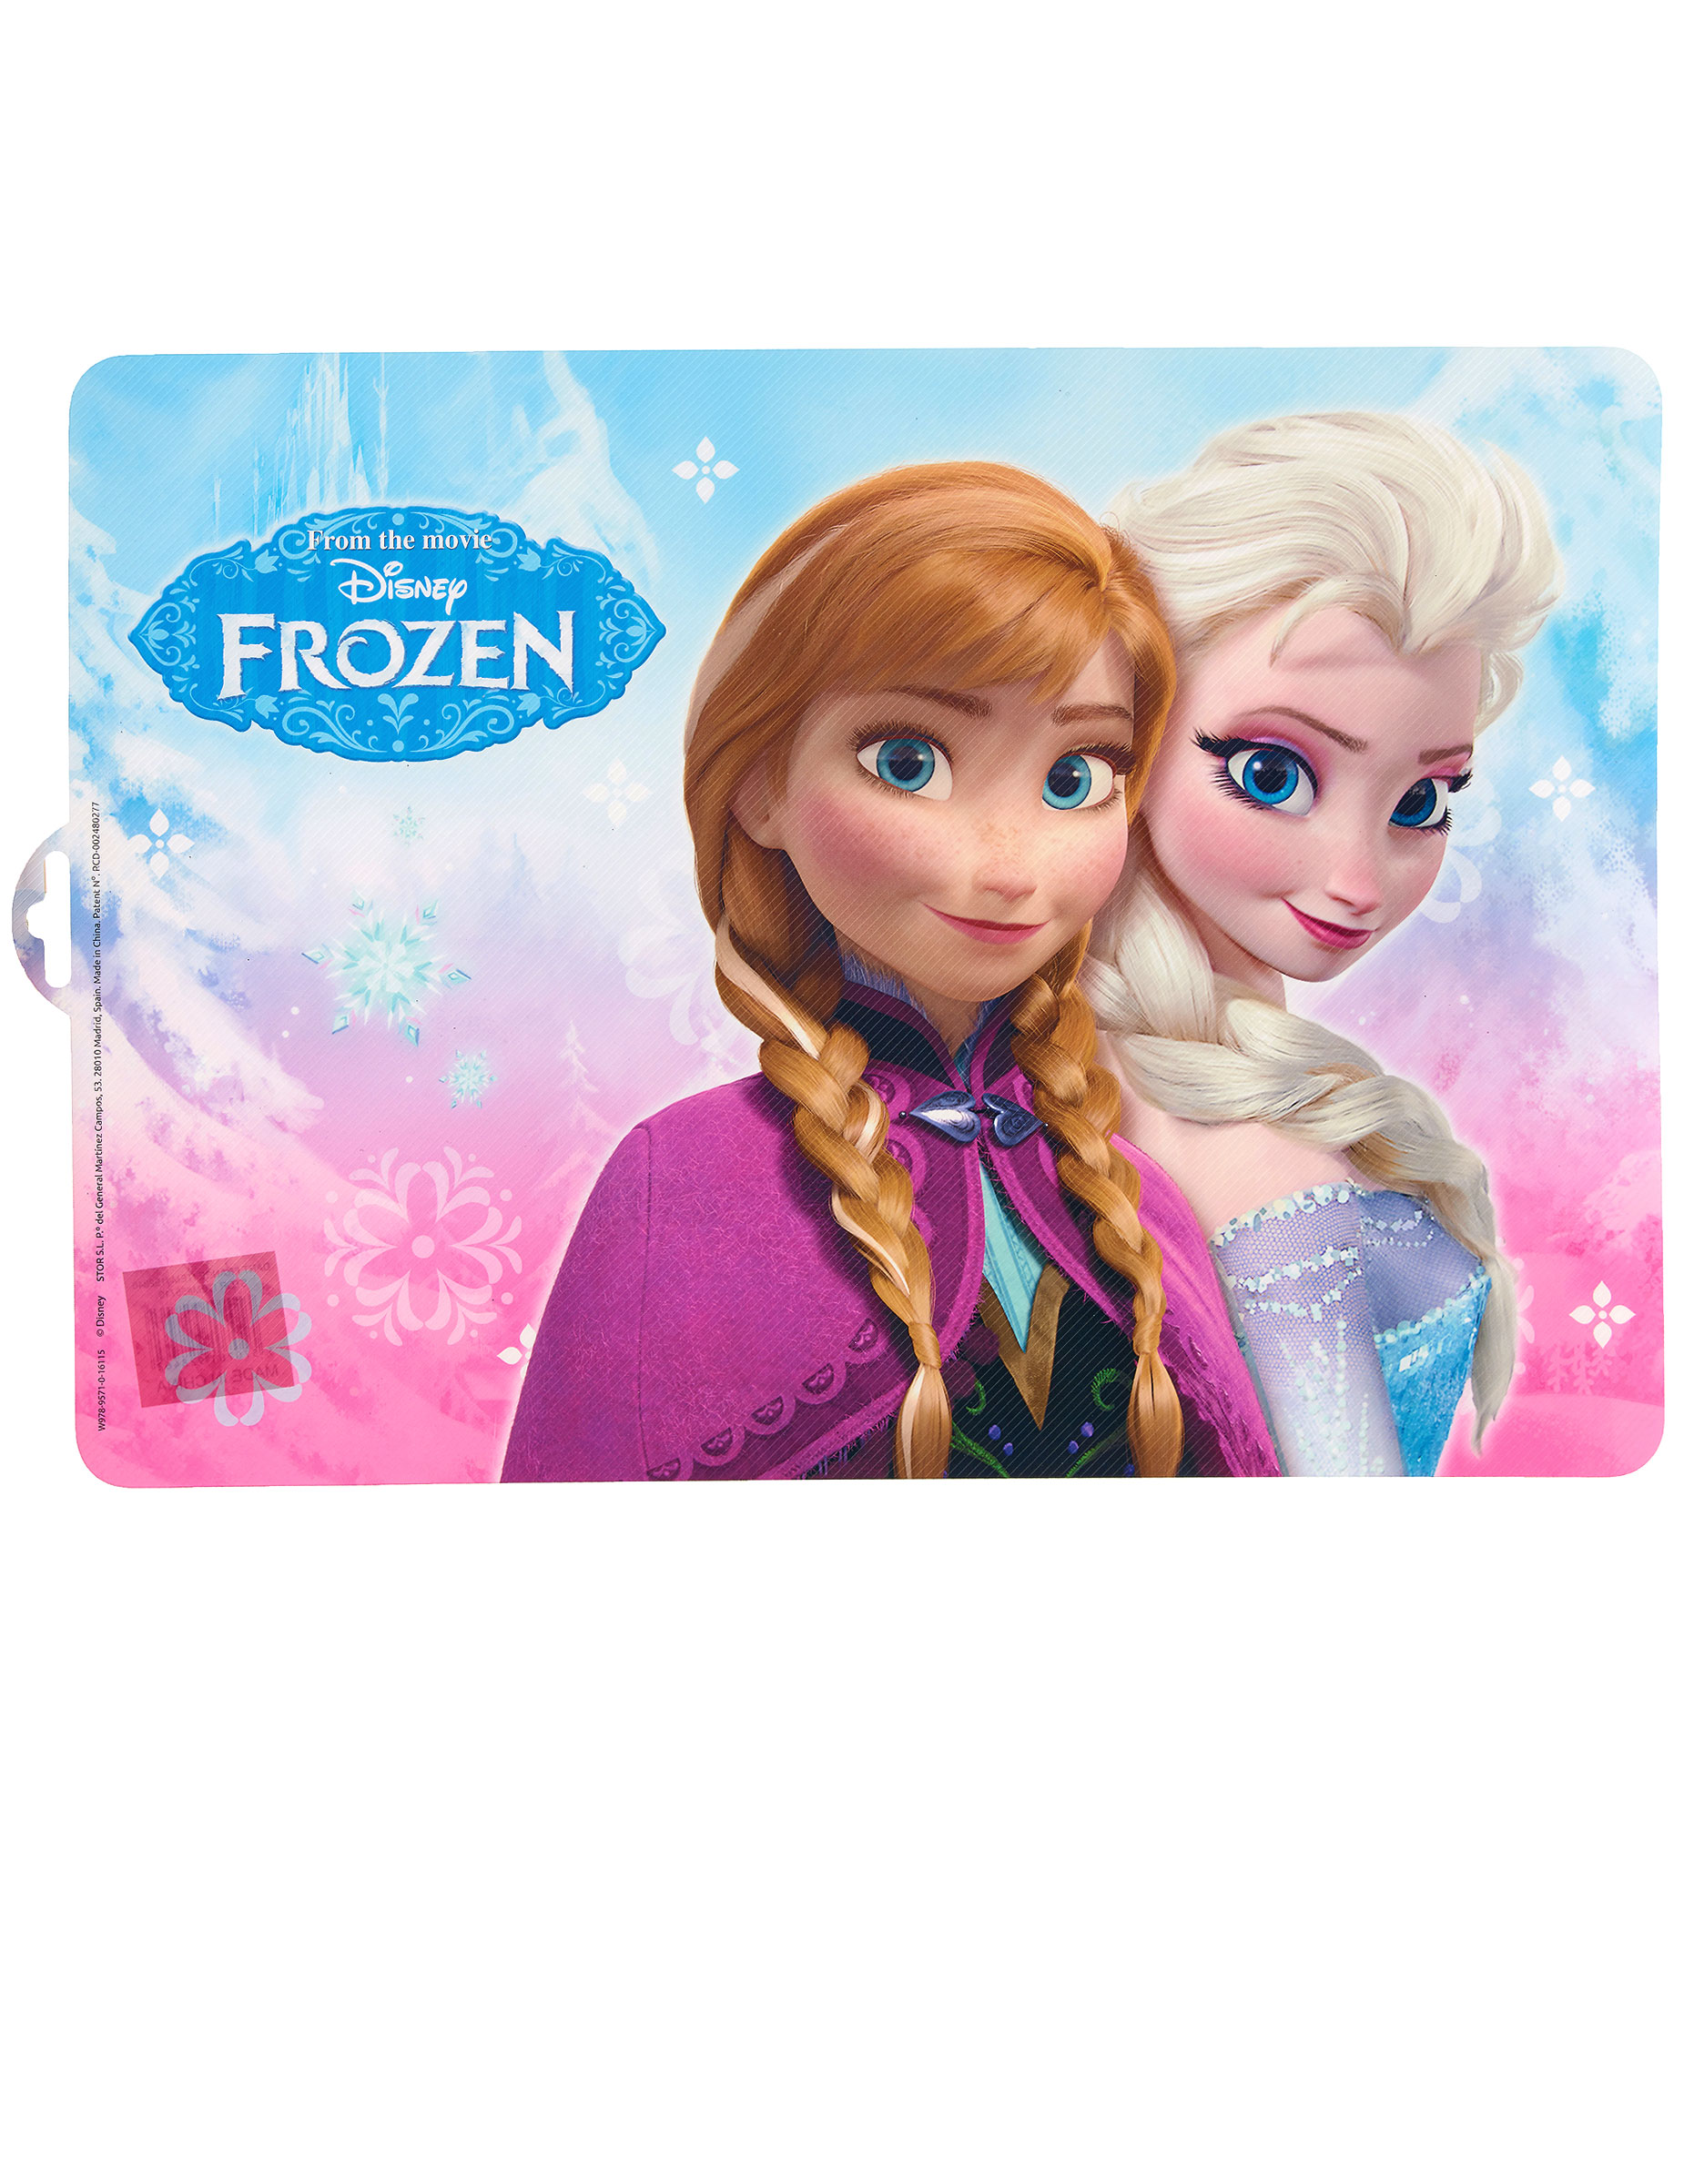 Set de table en plastique la reine des neiges for Set de table plastifie personnalise